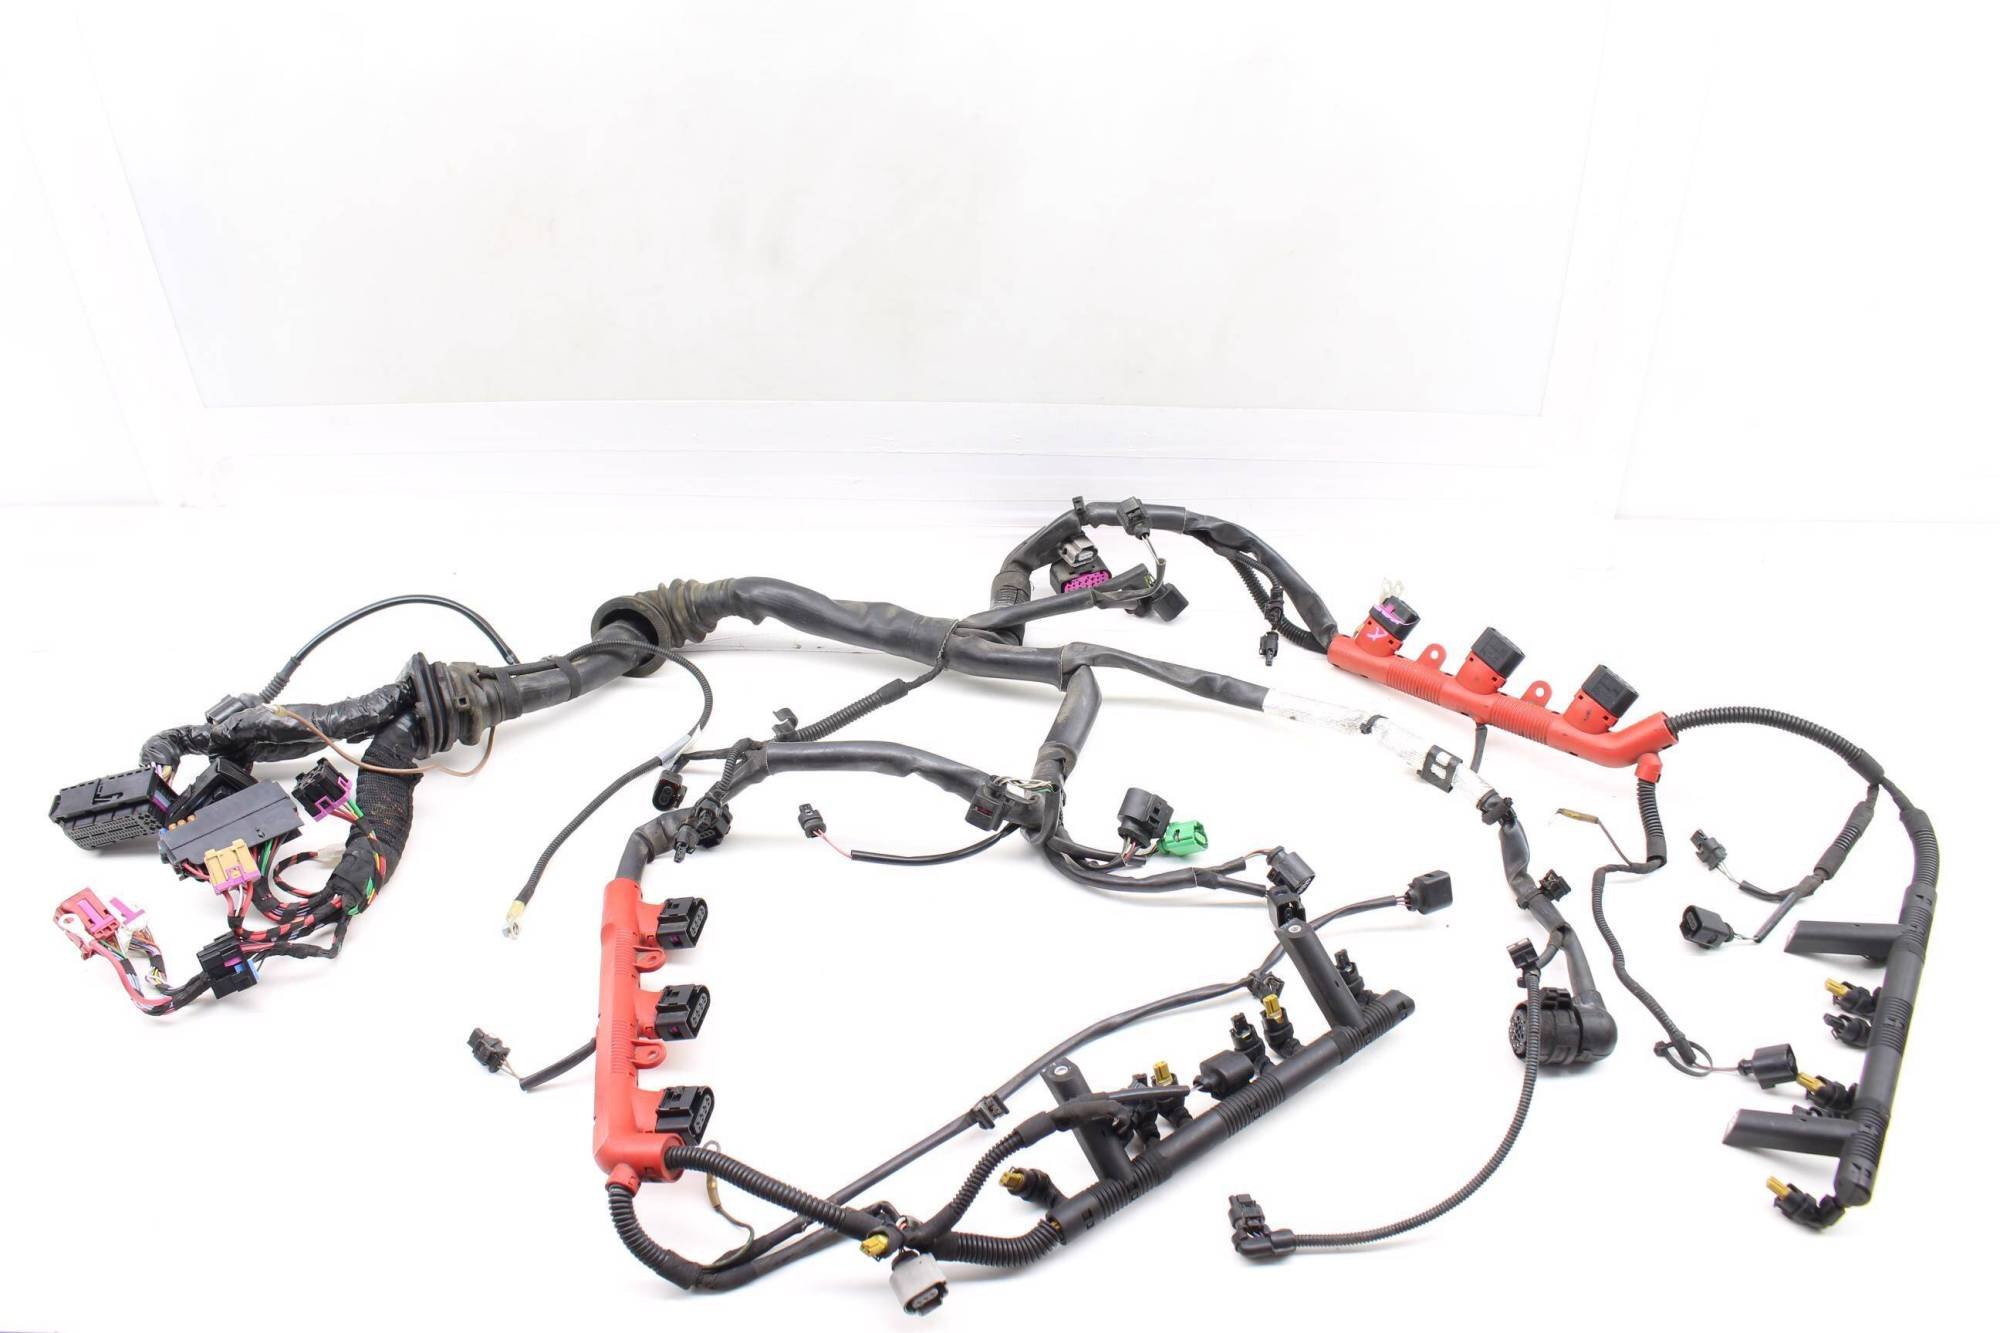 hight resolution of 2008 2009 audi a5 b8 3 2l cala engine wiring harness